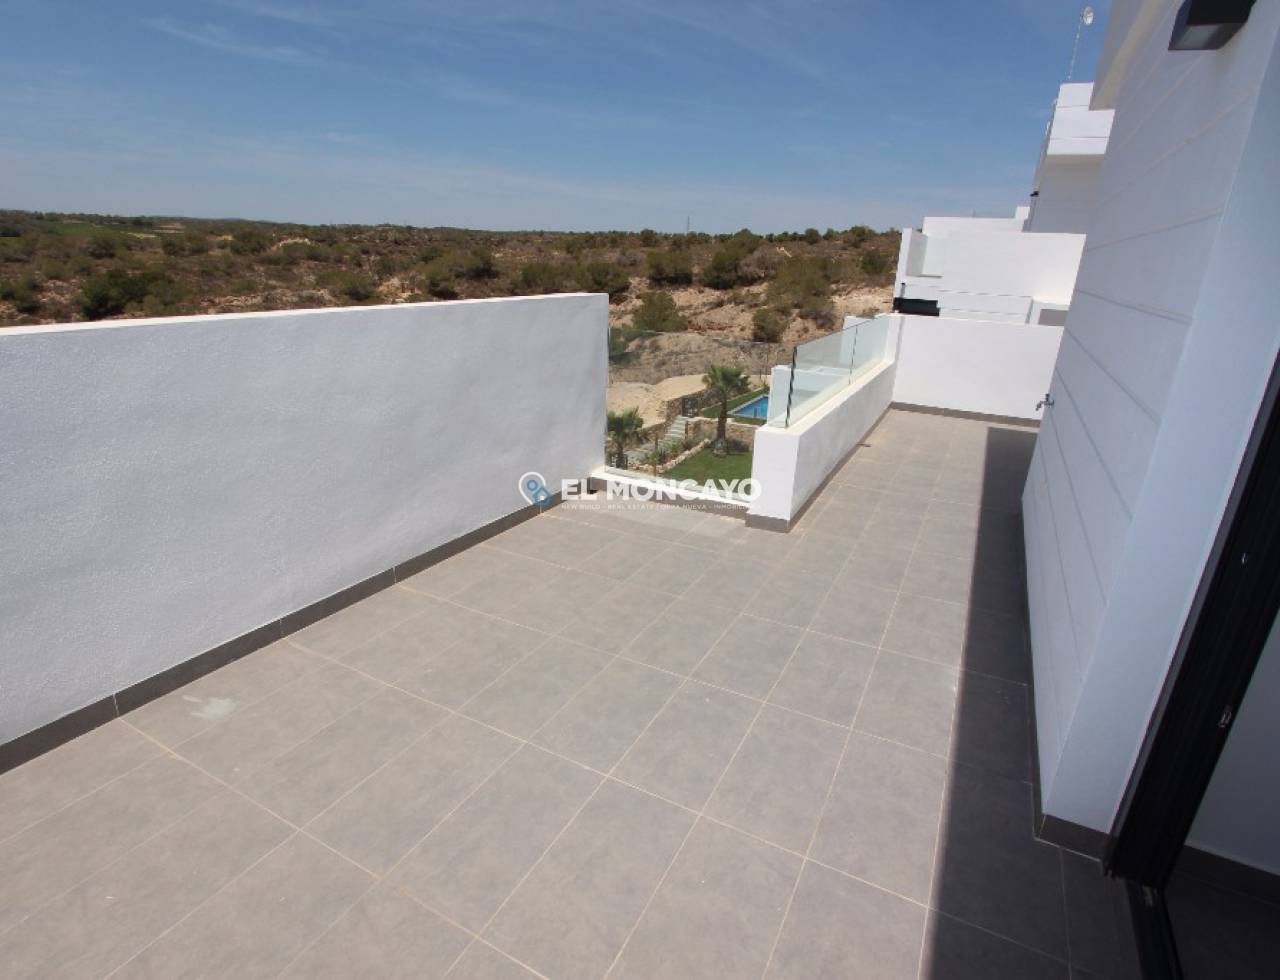 Penthouse duplex in Villamartín - Orihuela Costa (Costa Blanca South) 119 (5)